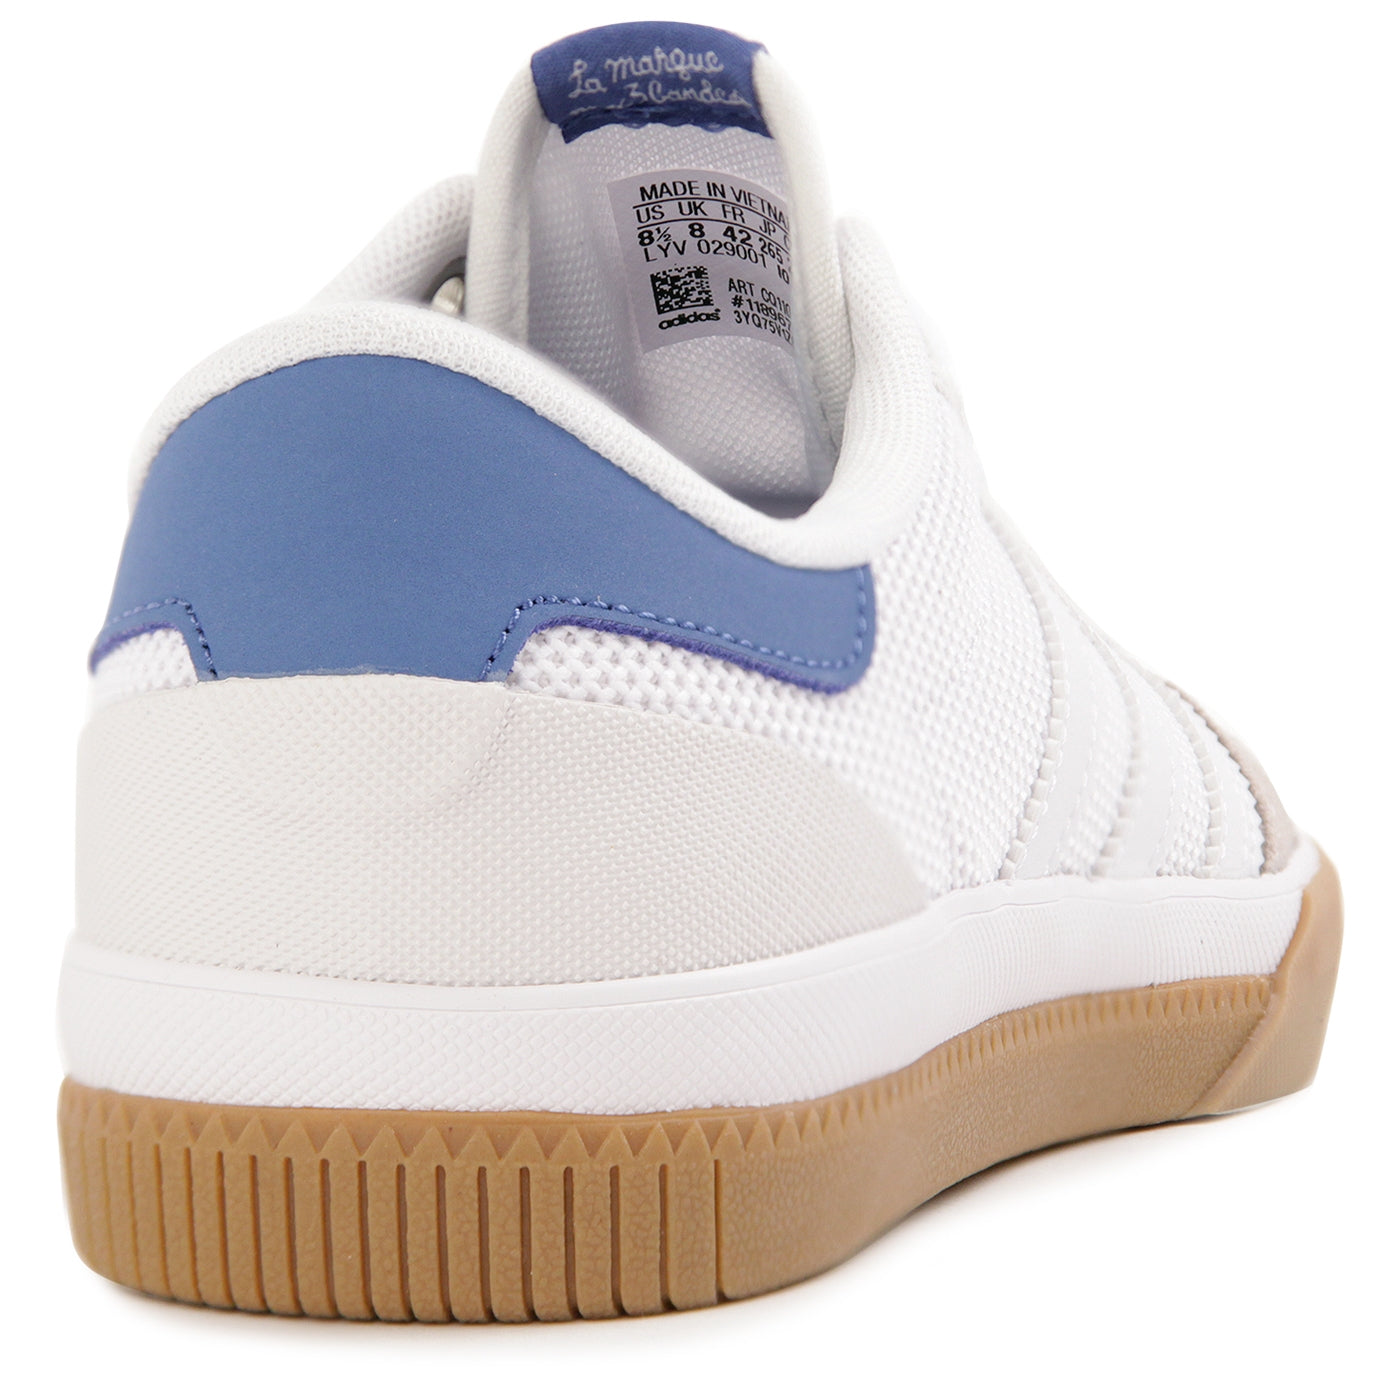 official photos 1db85 d532f Adidas Lucas Premiere Shoes - Footwear White  Trace Royal  Gum. Size  Charts